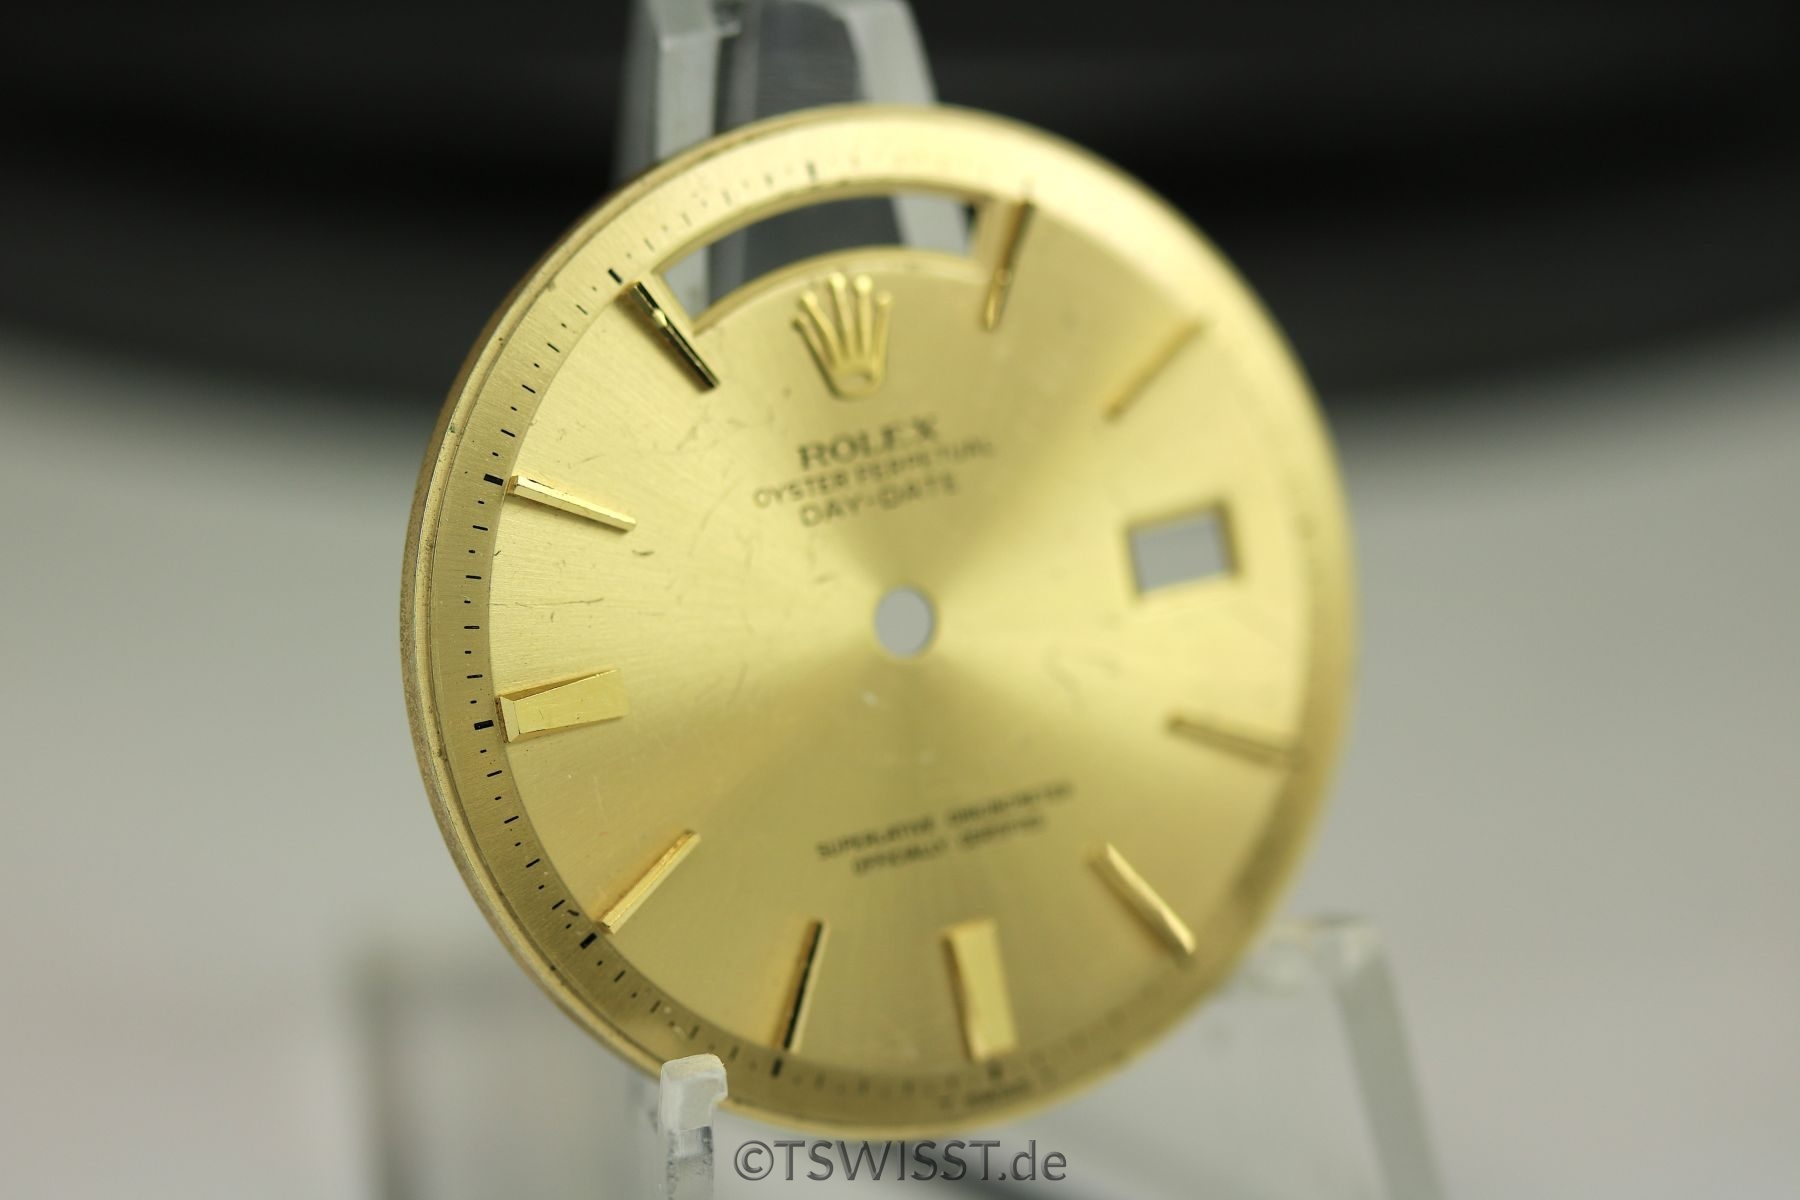 Rolex Day-Date 1803 dial